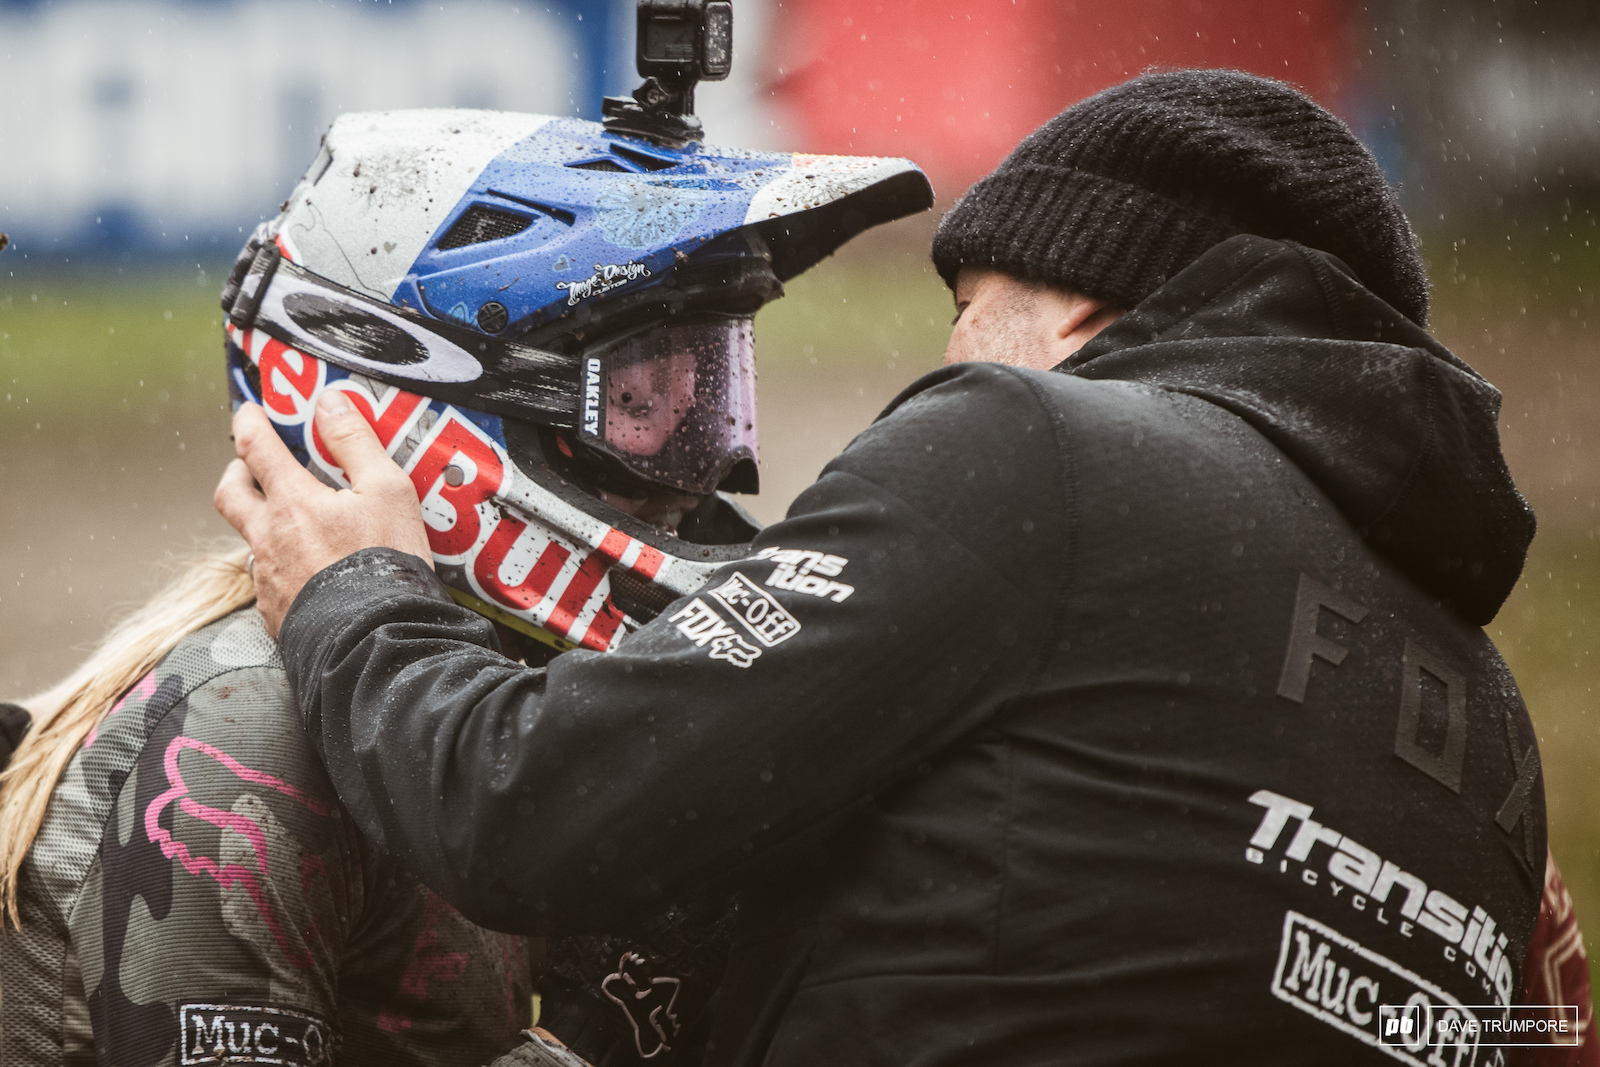 Tany Seagrave was first to congratulate Tahnee on a job well done. 2nd in the race and 2nd for the season despite being disqualified at round 3 in Leogang.